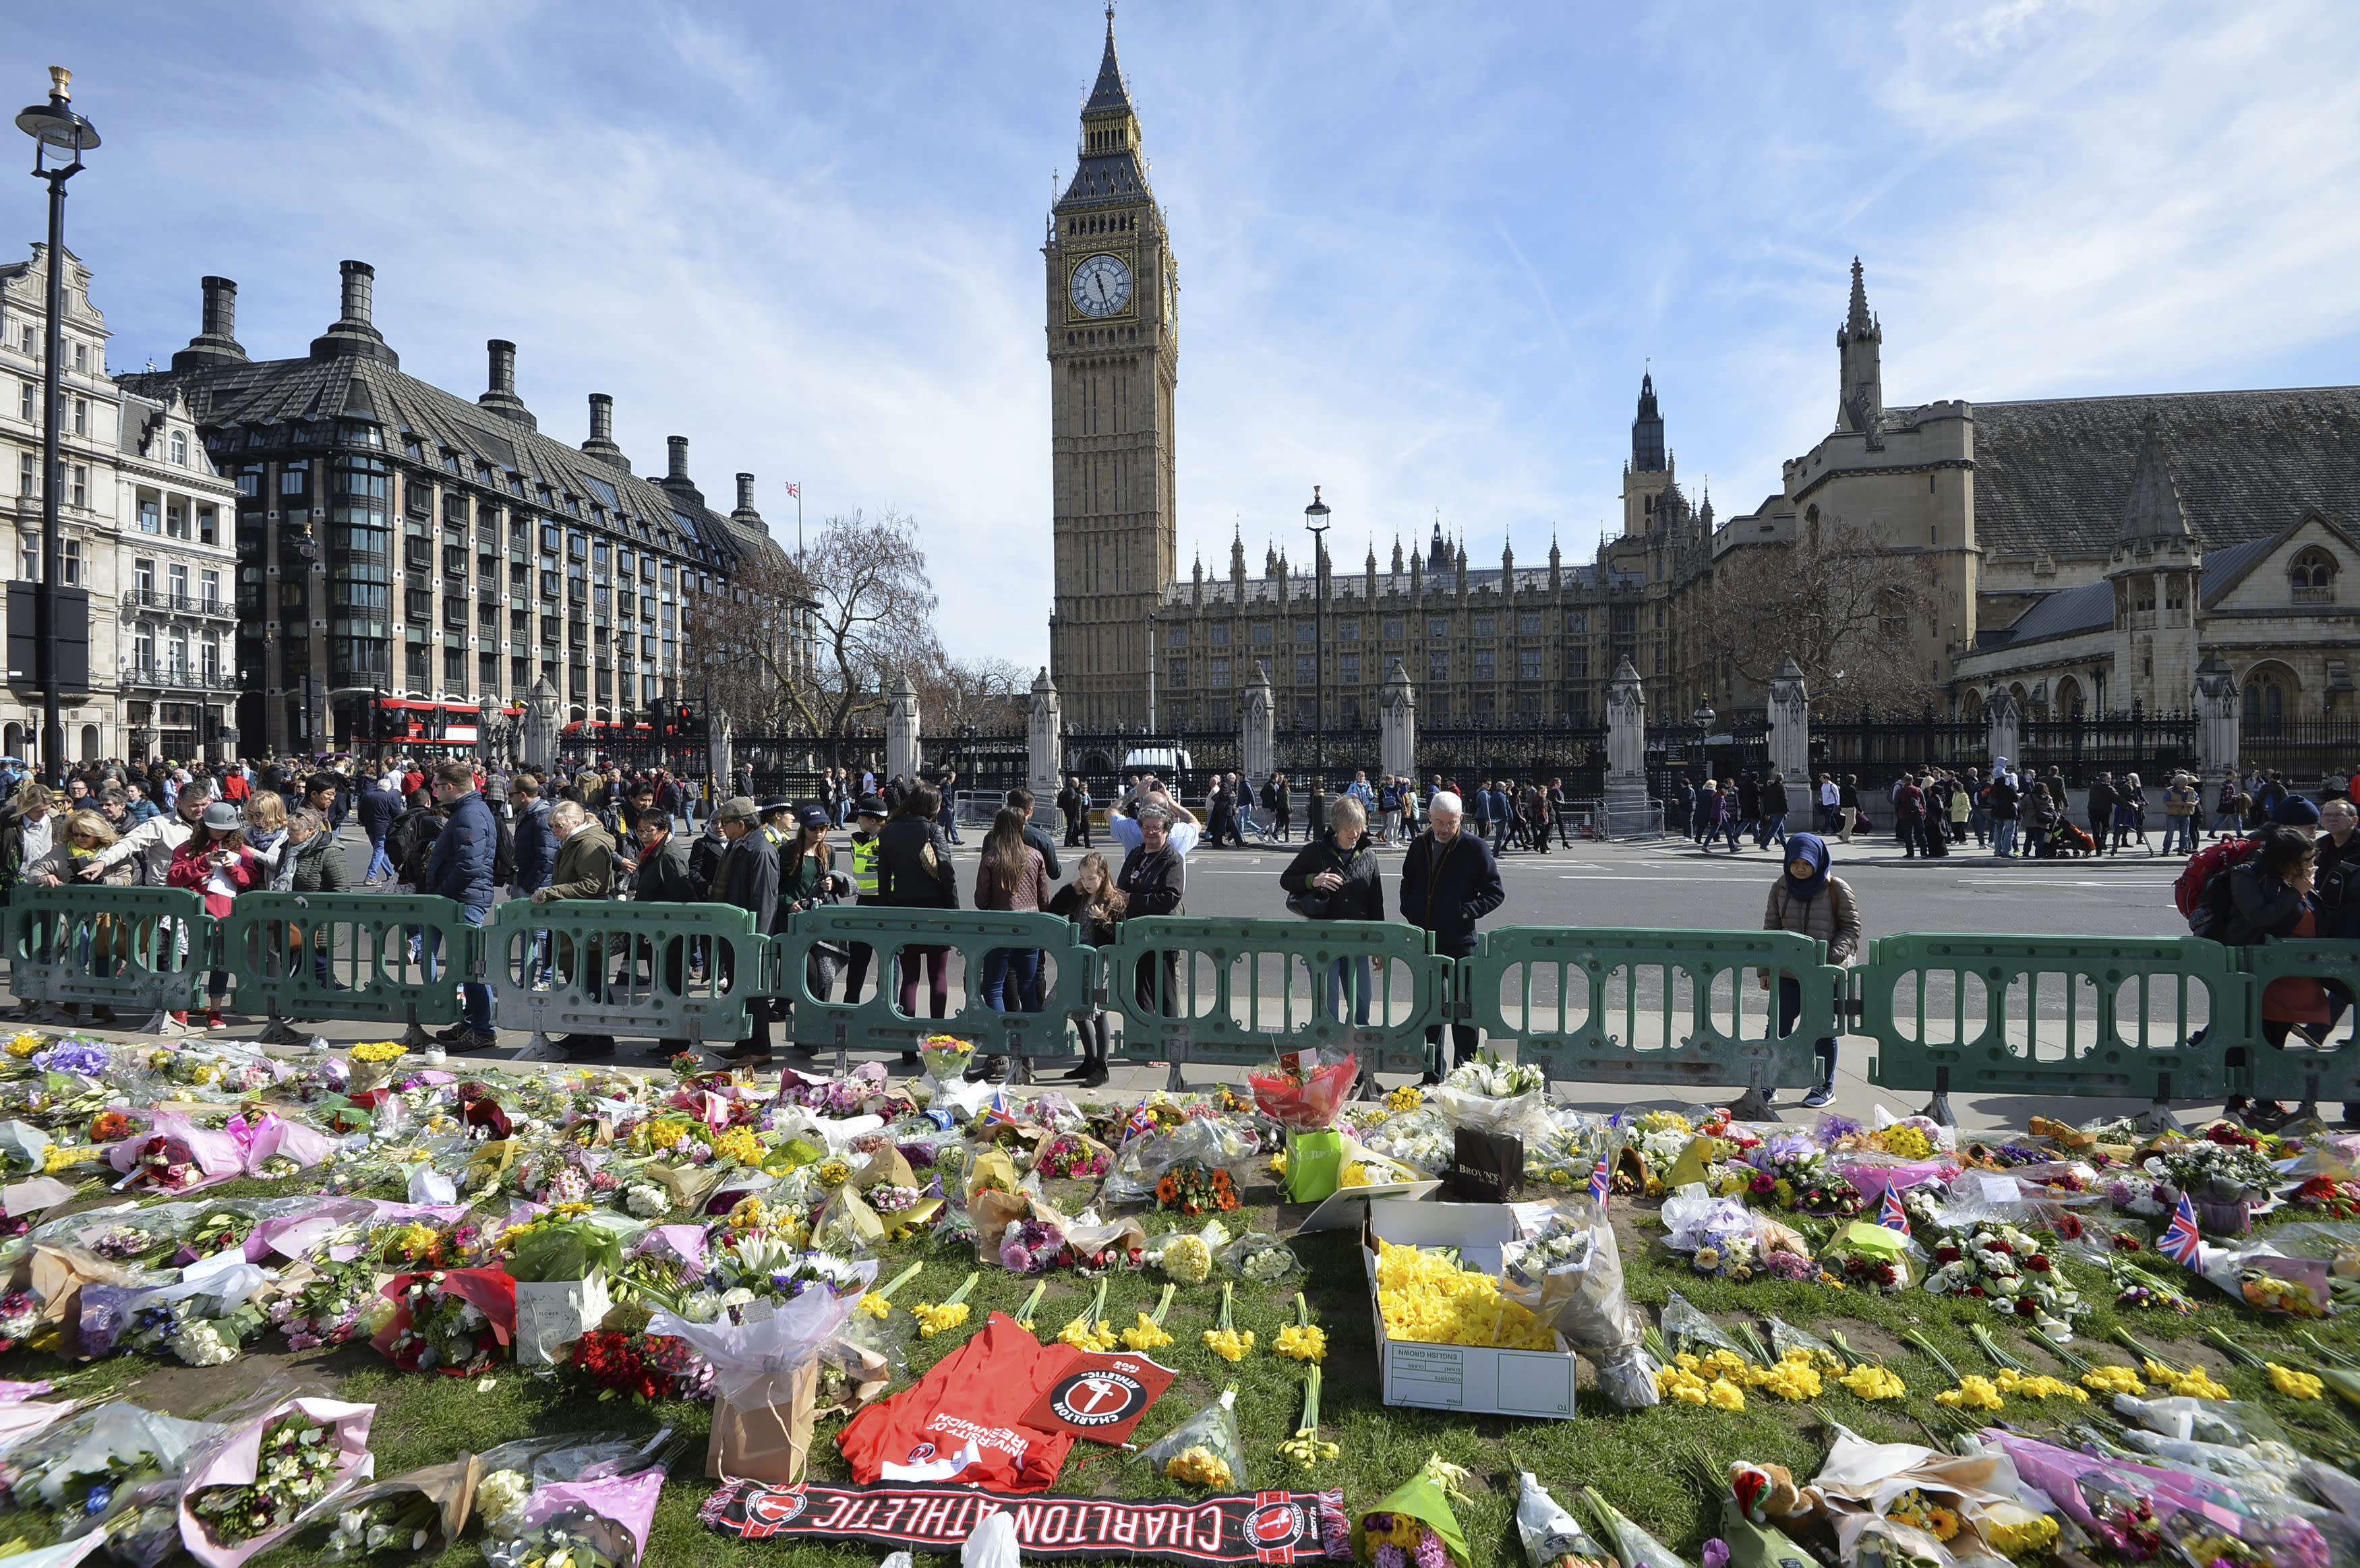 UK: Attacker Used WhatsApp, Firm Must Help Police Get Access